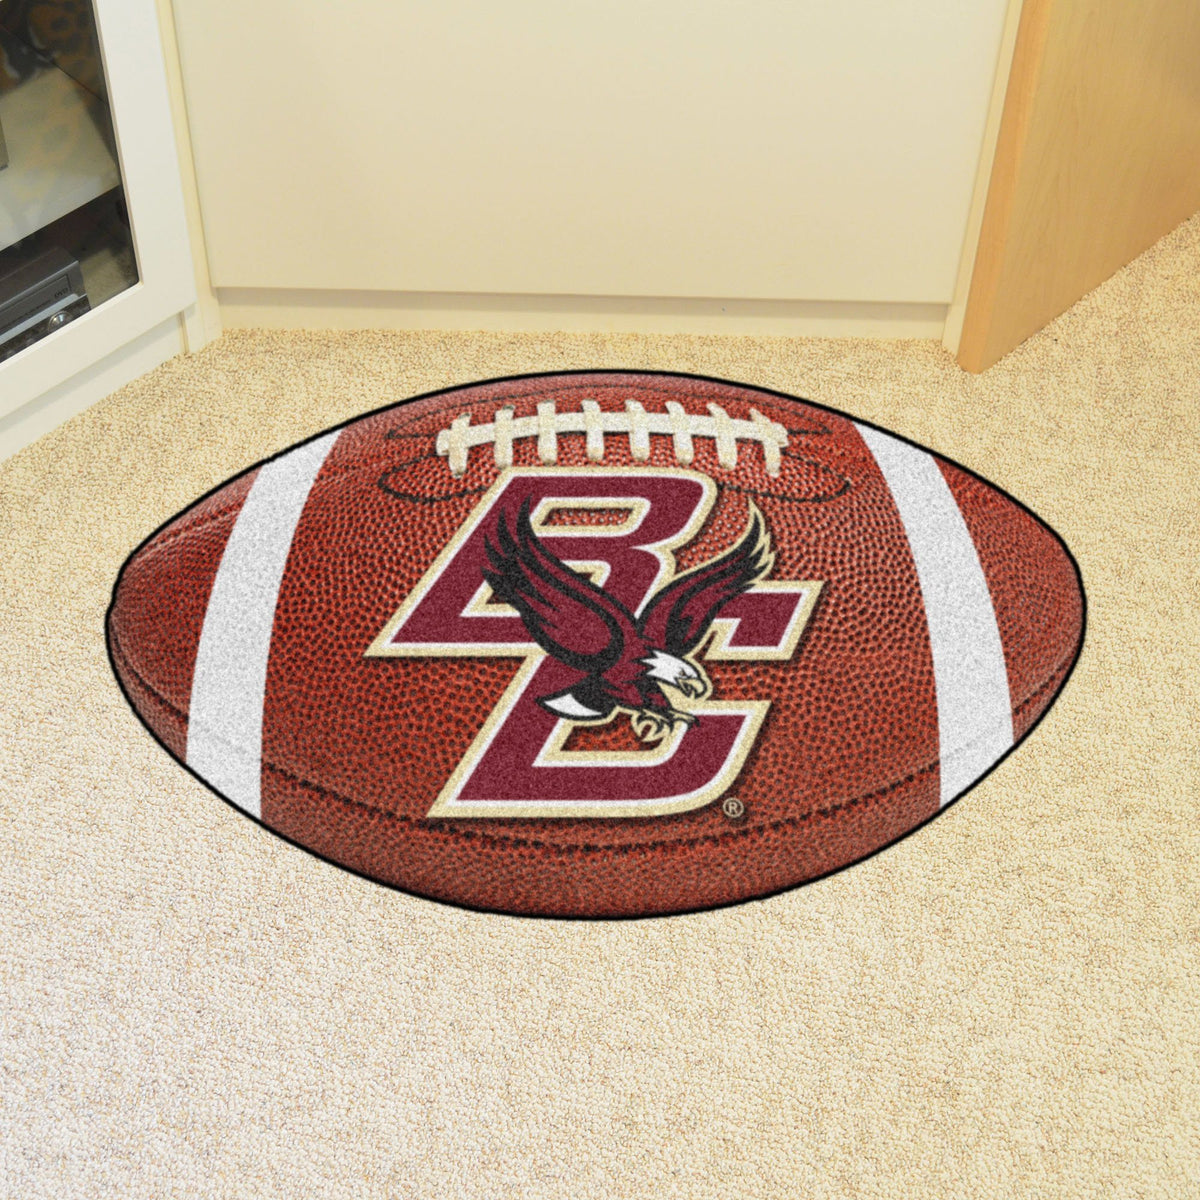 Collegiate - Football Mat: A - K Collegiate Mats, Rectangular Mats, Football Mat, Collegiate, Home Fan Mats Boston College